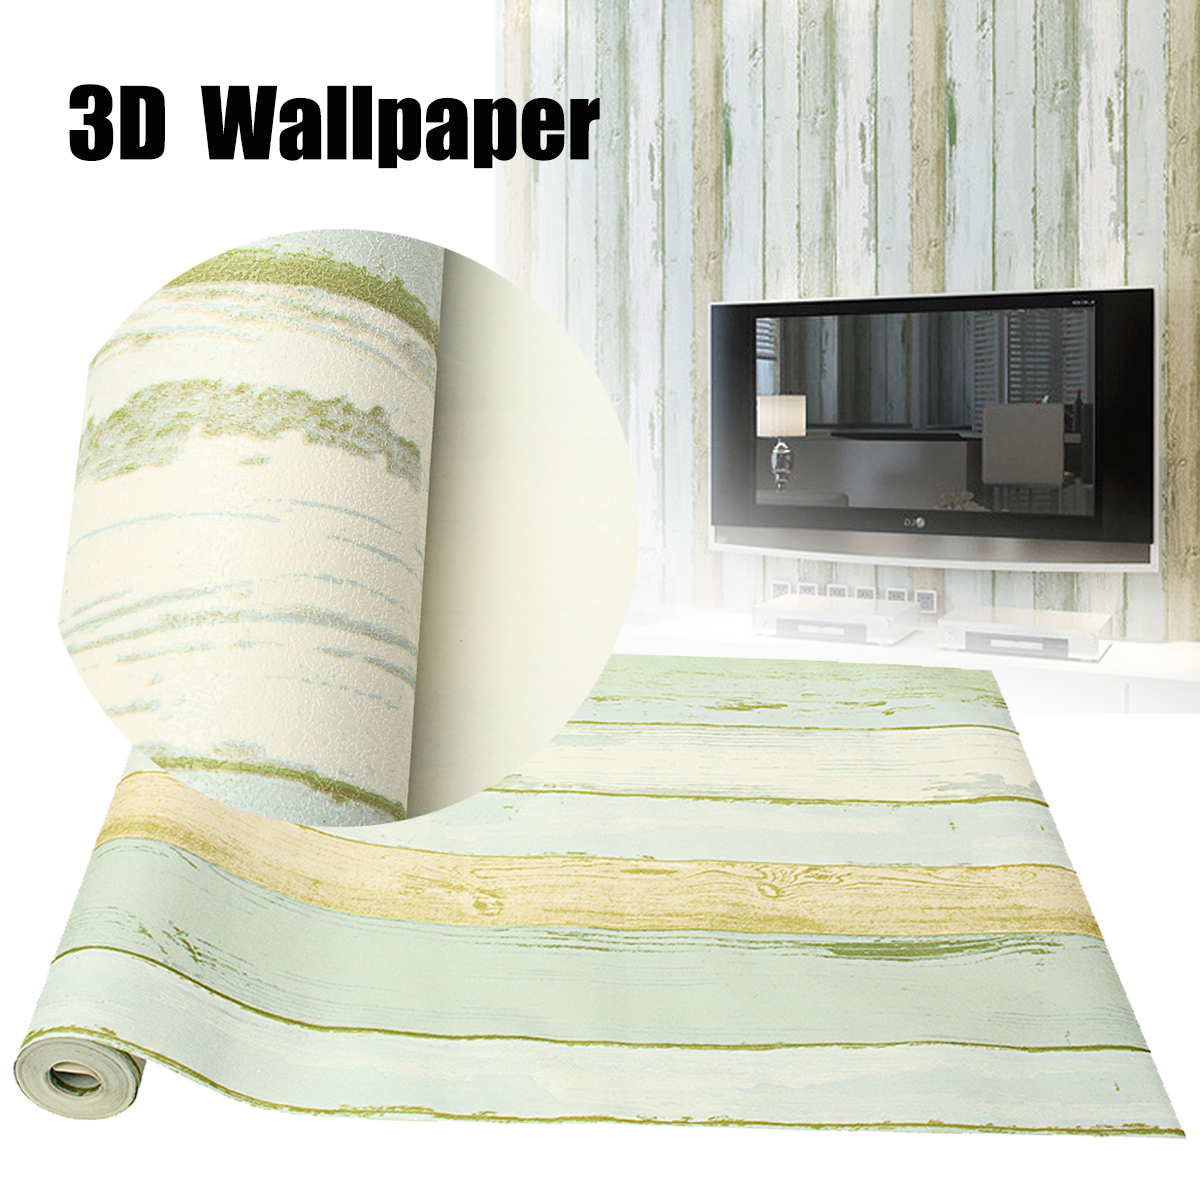 ef1dbbb79aa Vintage Retro Home Room Decoration 3D Wallpaper Roll Realistic Wood  Panelling Timber Plank Panel Stripe Wallpaper Sticker